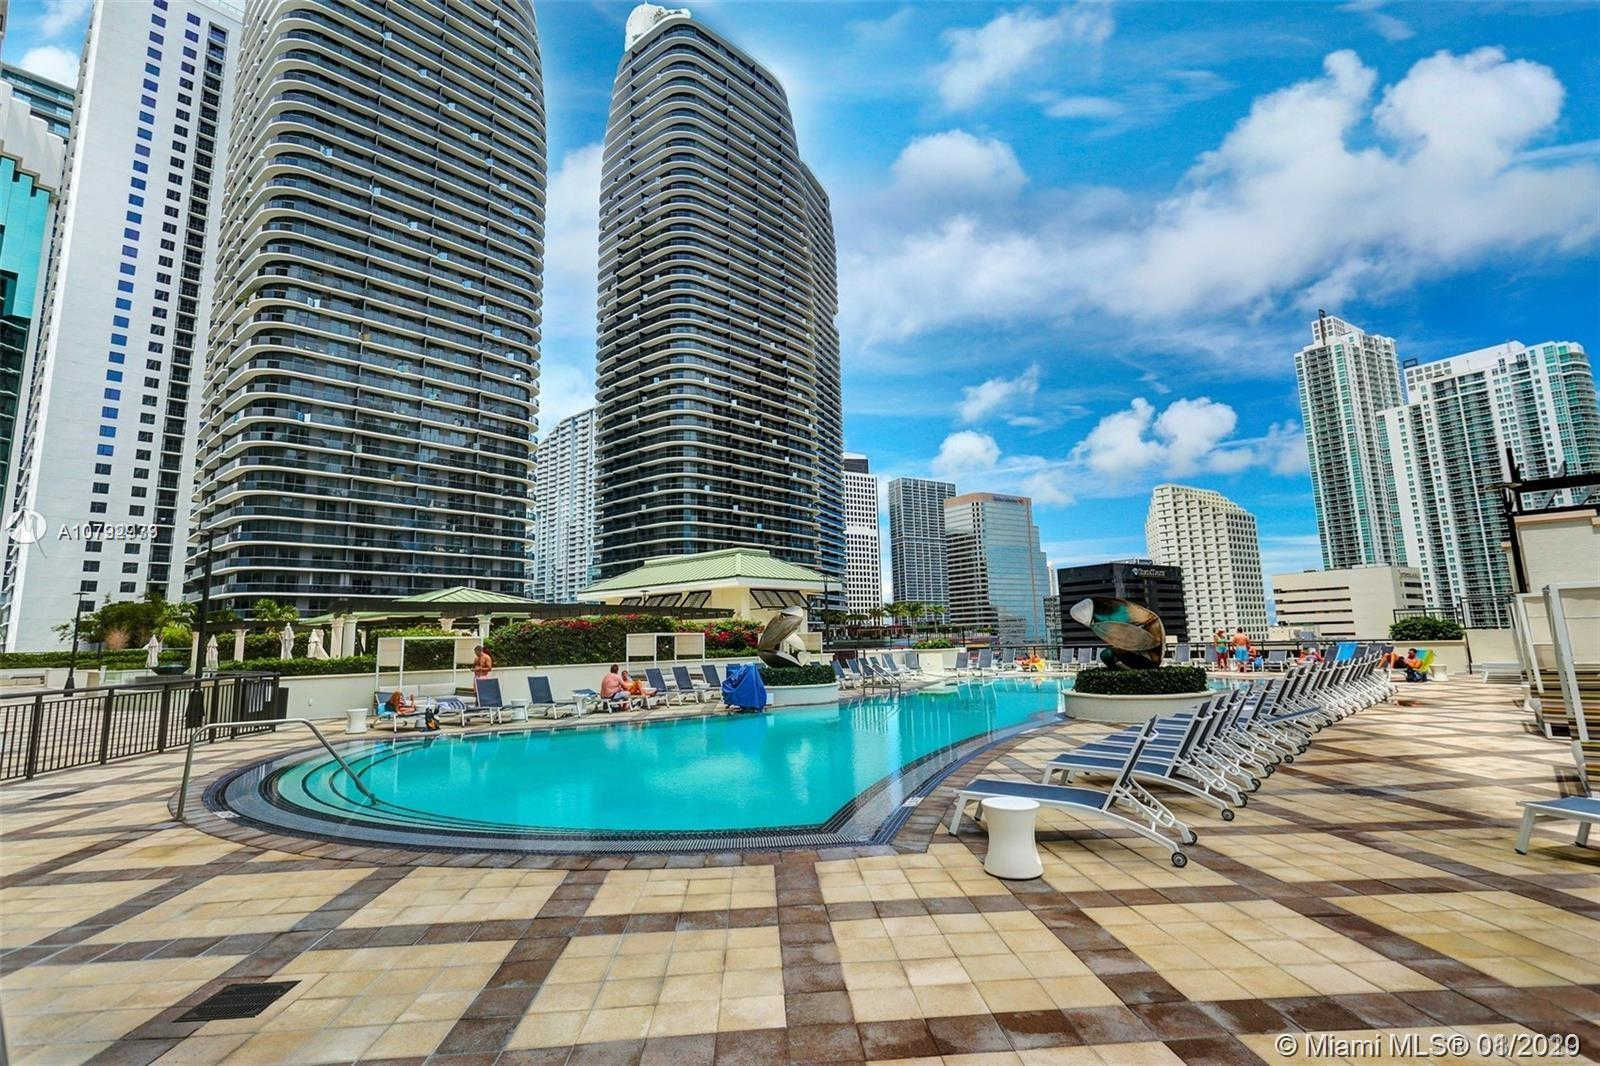 999 SW 1 Ave #3014, Miami, FL 33130 now has a new price of $455,000!